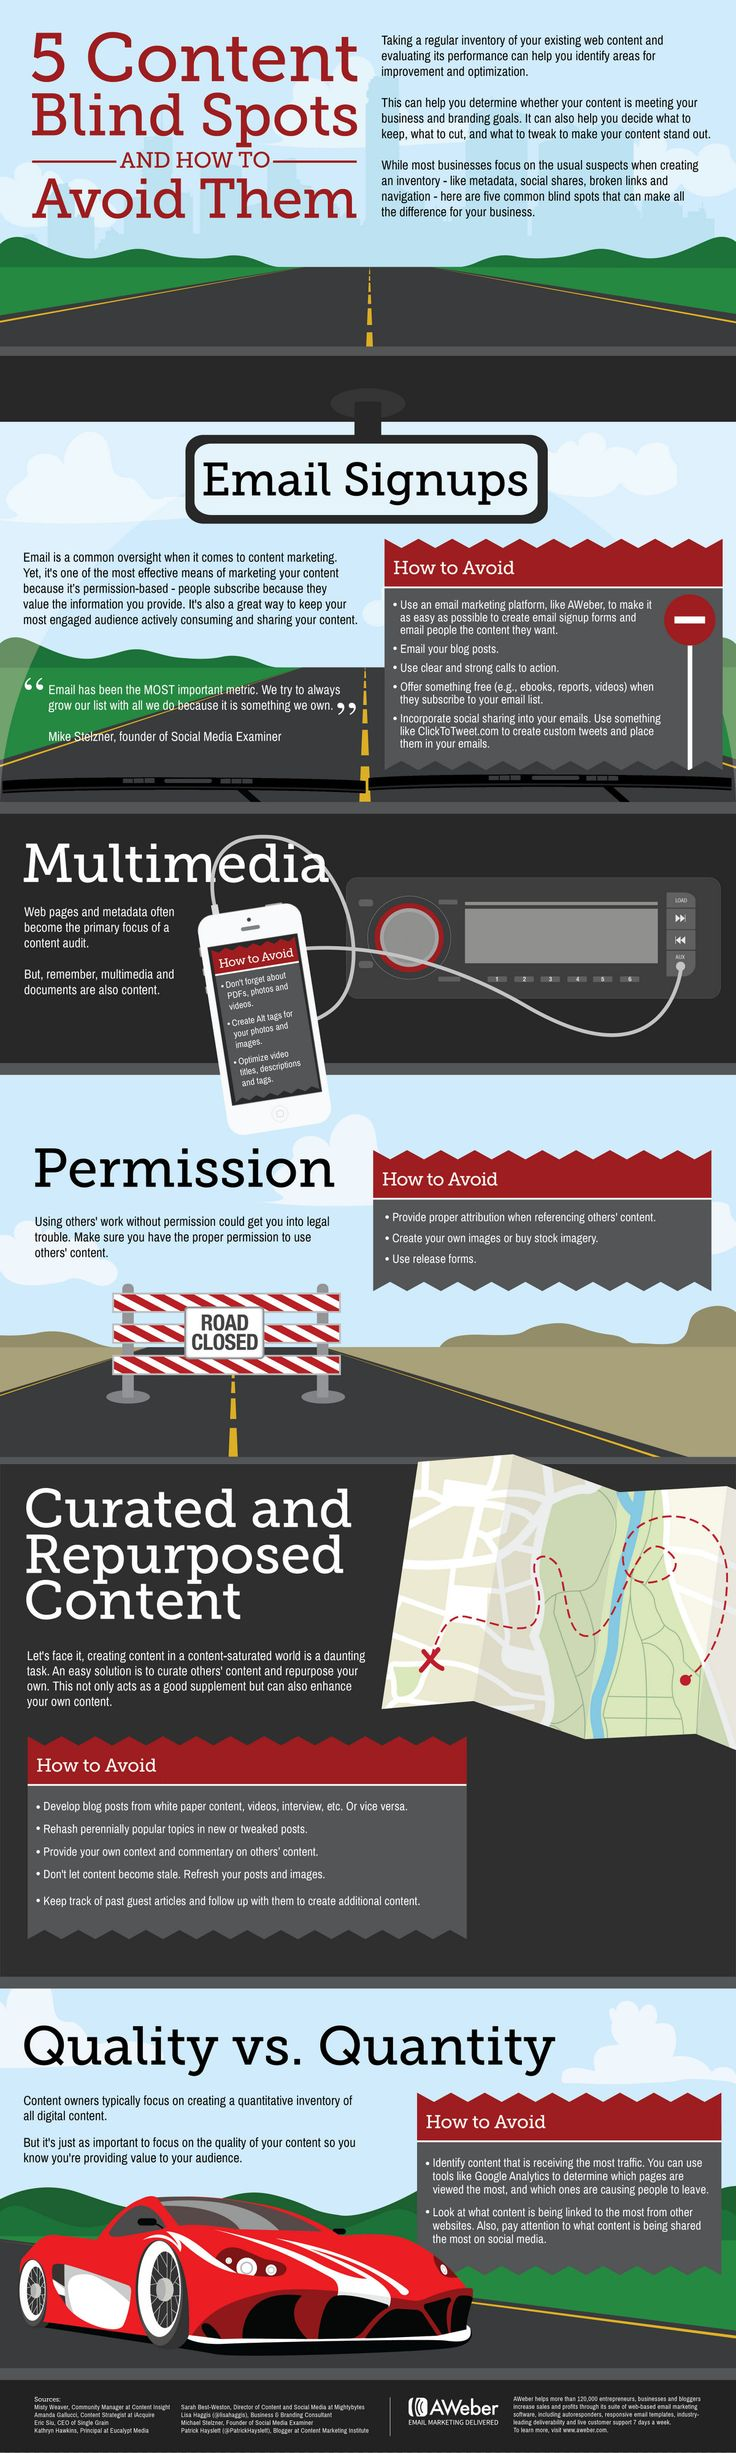 5 Content Blind Spots And How To Avoid Them | via #BornToBeSocial - Pinterest Marketing